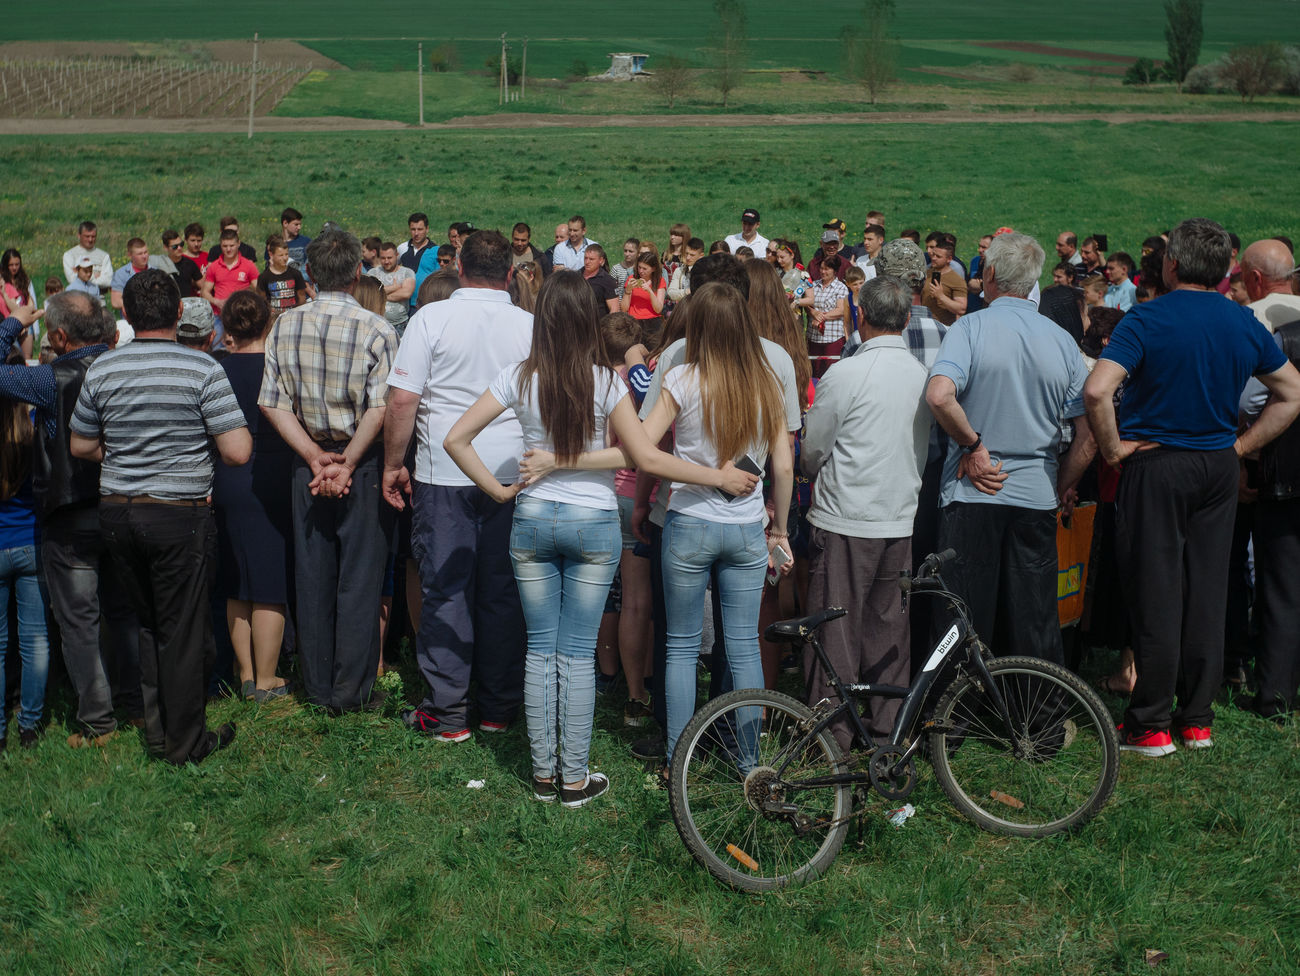 group of people, crowd, large group of people, real people, grass